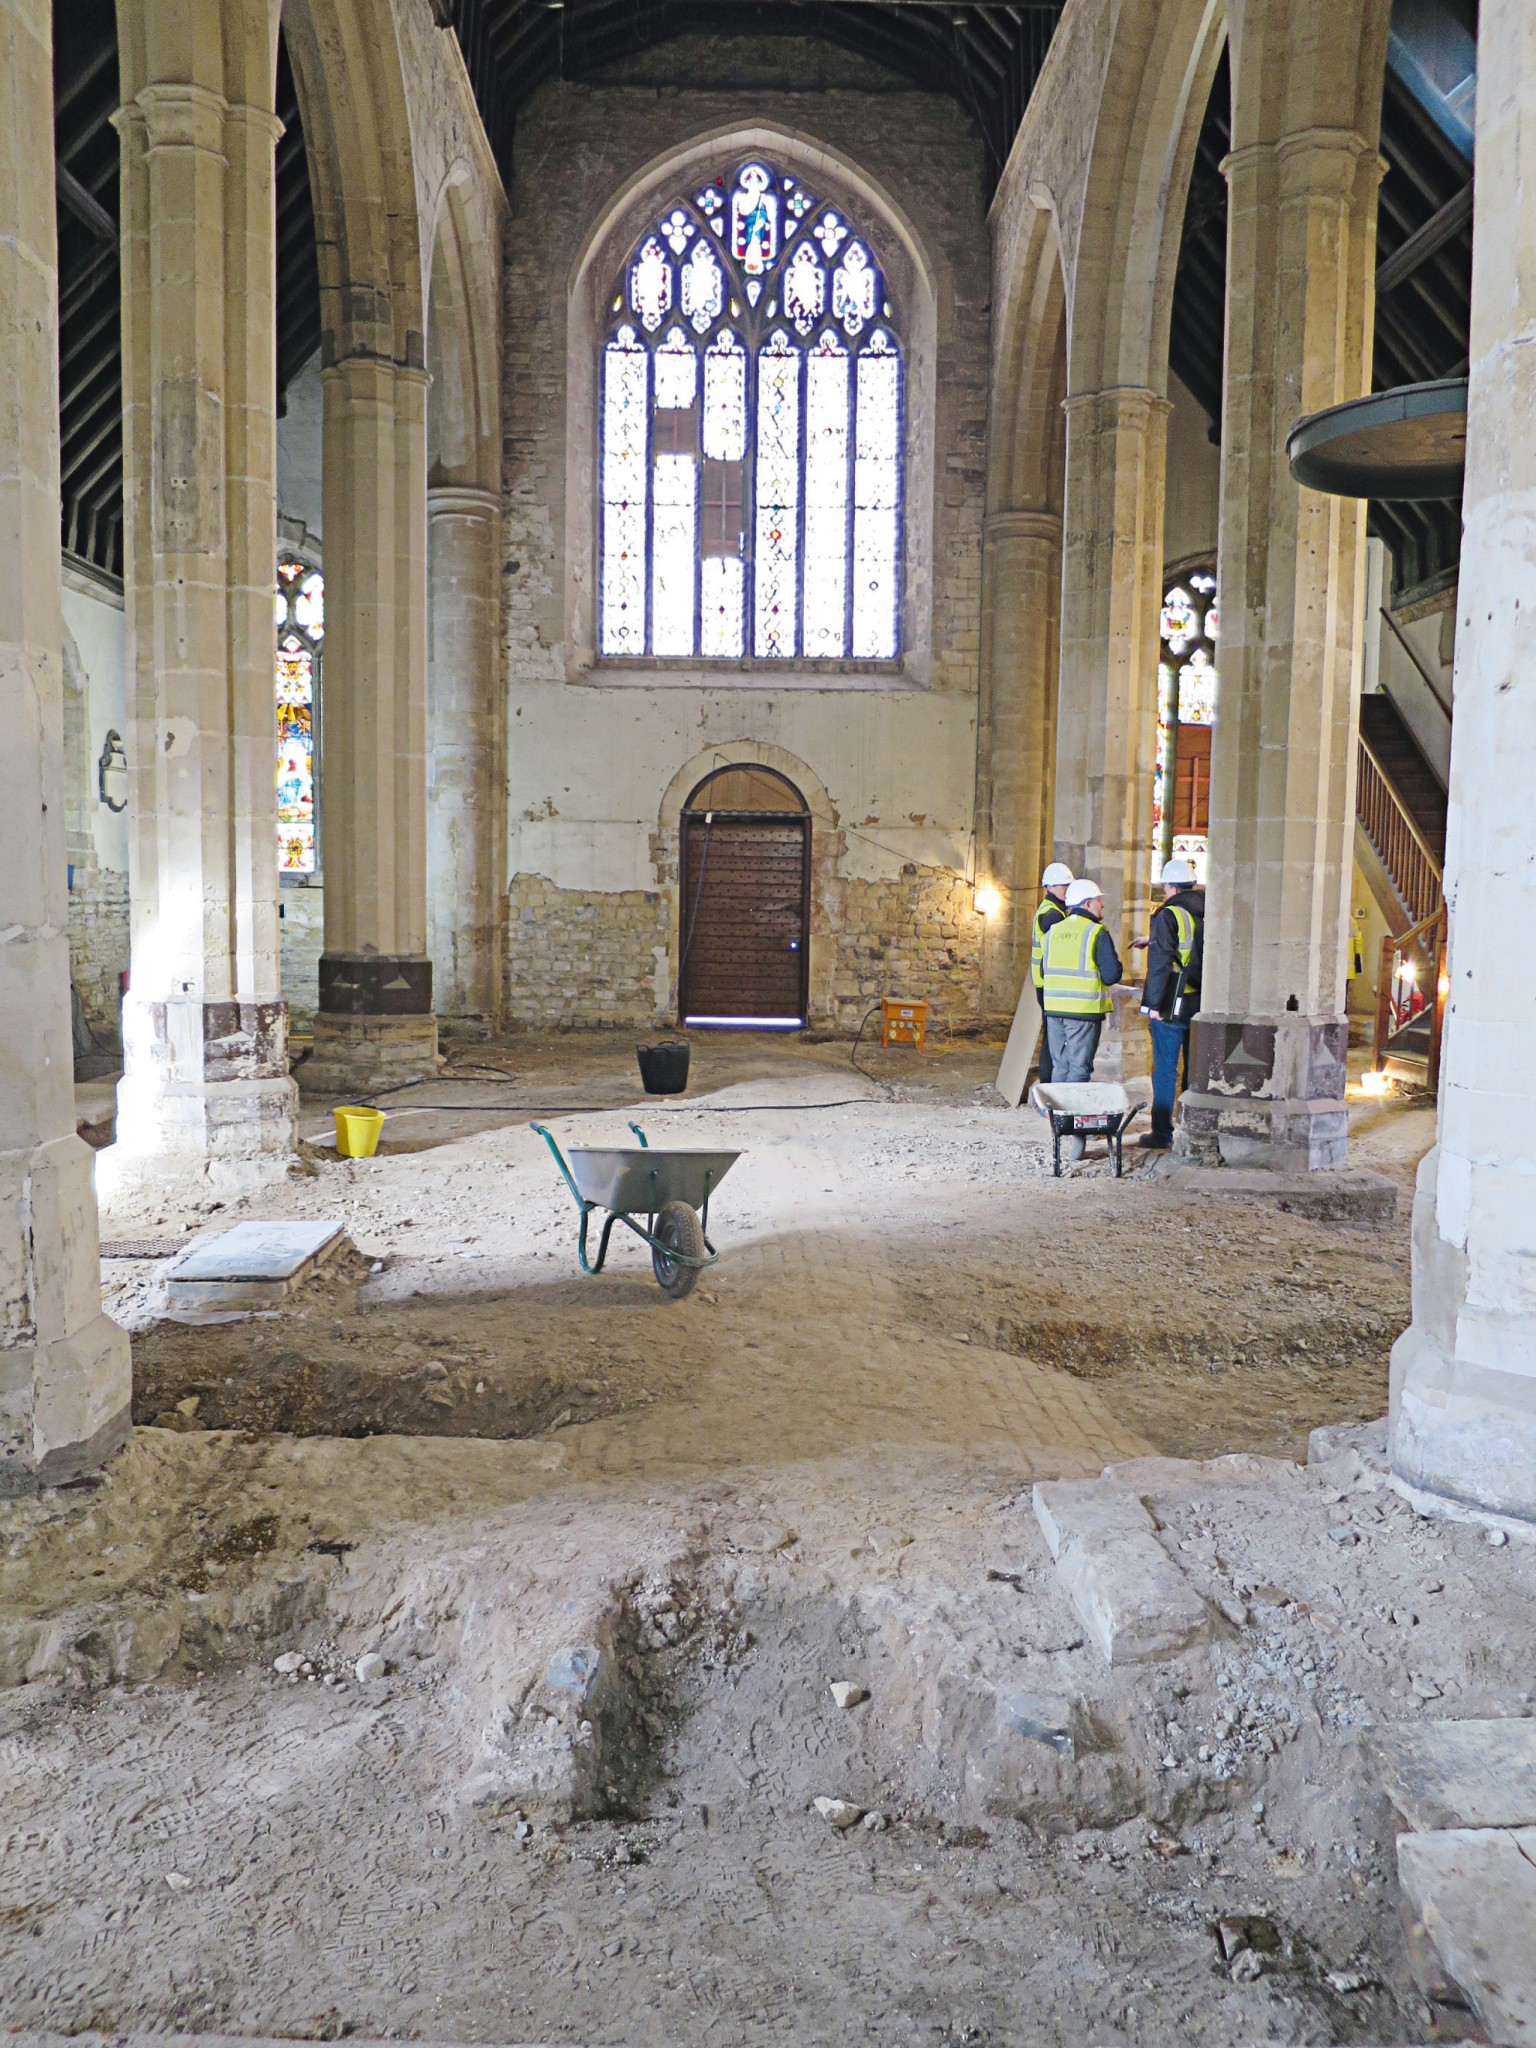 Image of the church interior with three builders talking